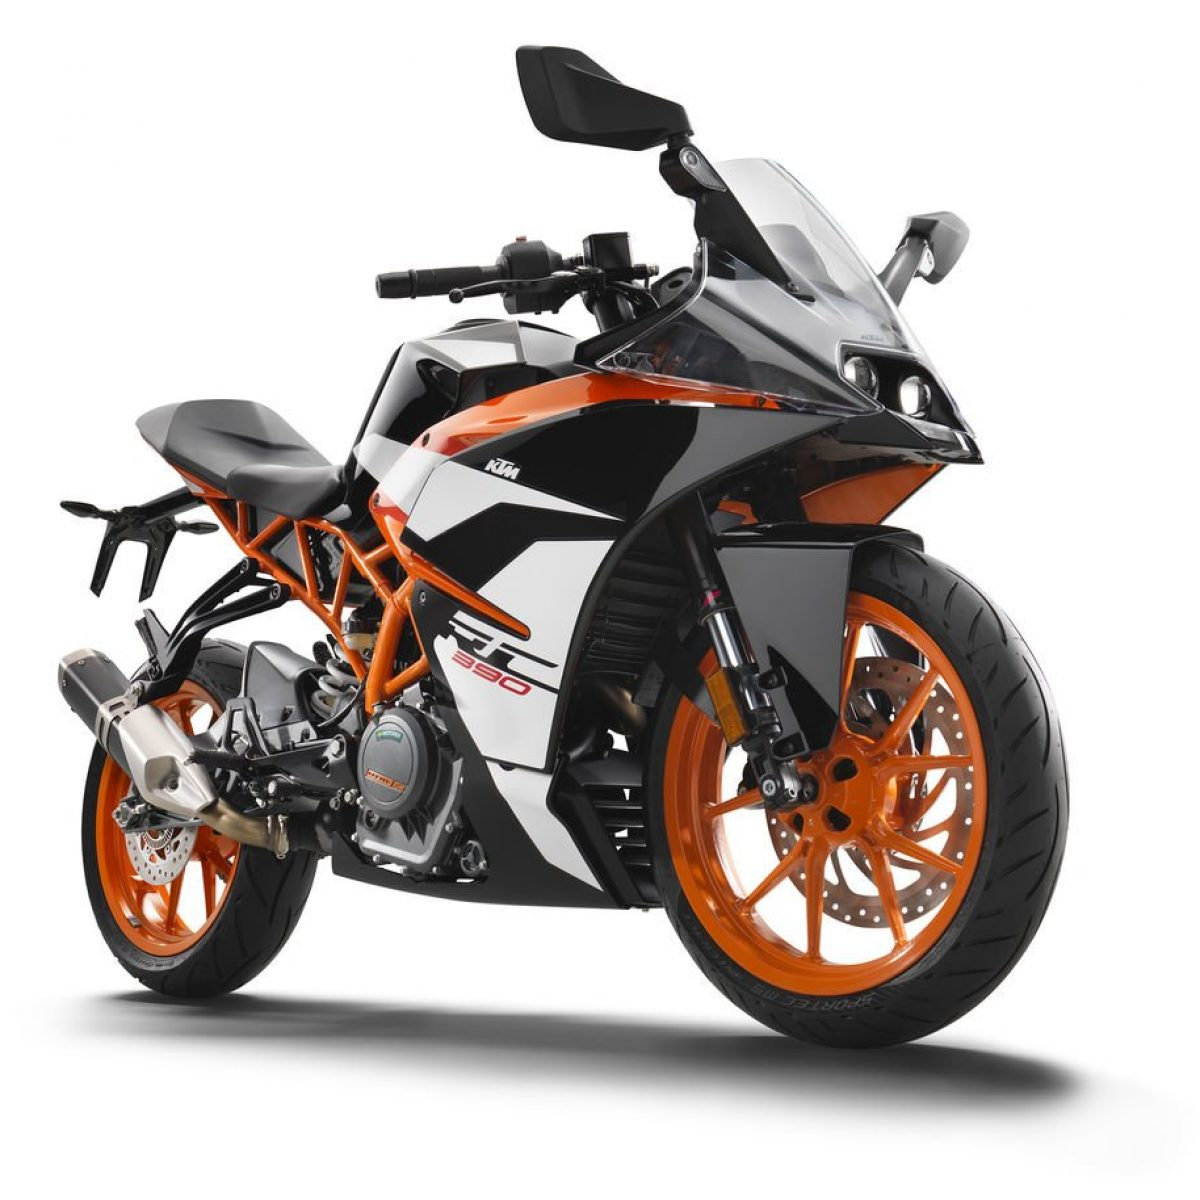 Ktm Duke 390 2017 Price >> 2017 Ktm Rc 390 India Price 2 25 Lakh Images Specifications